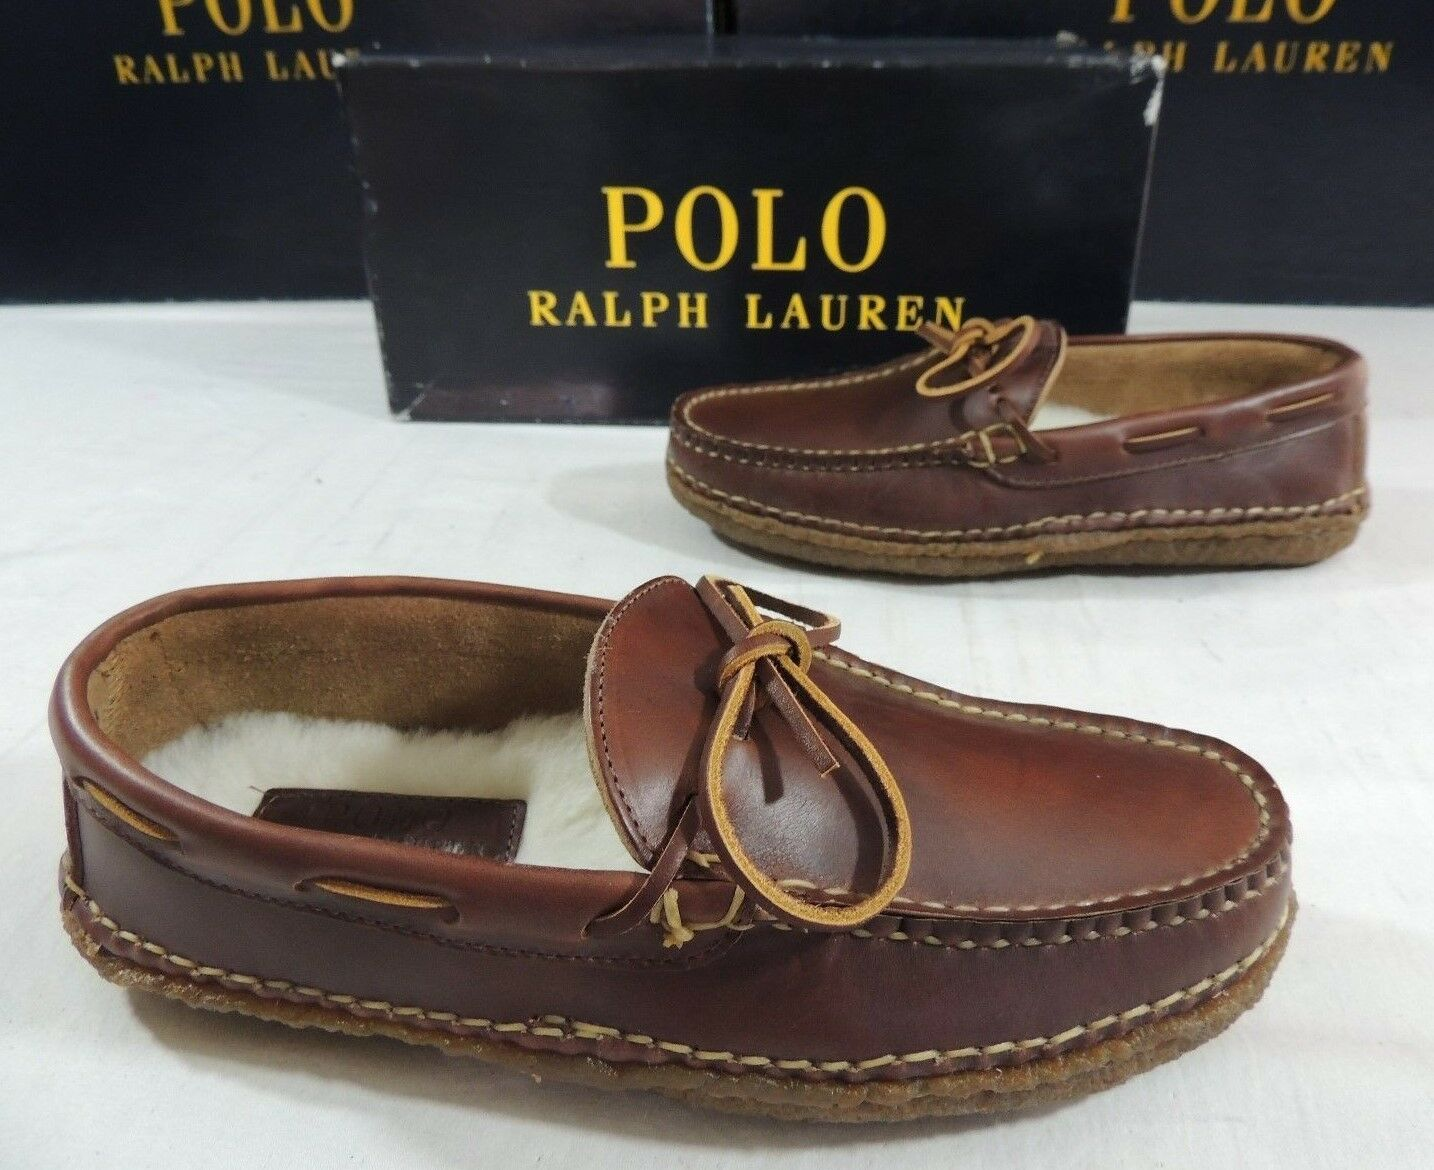 Polo Ralph Lauren Shearling Fur Leather Driver Moccasins USA Winter shoes 8